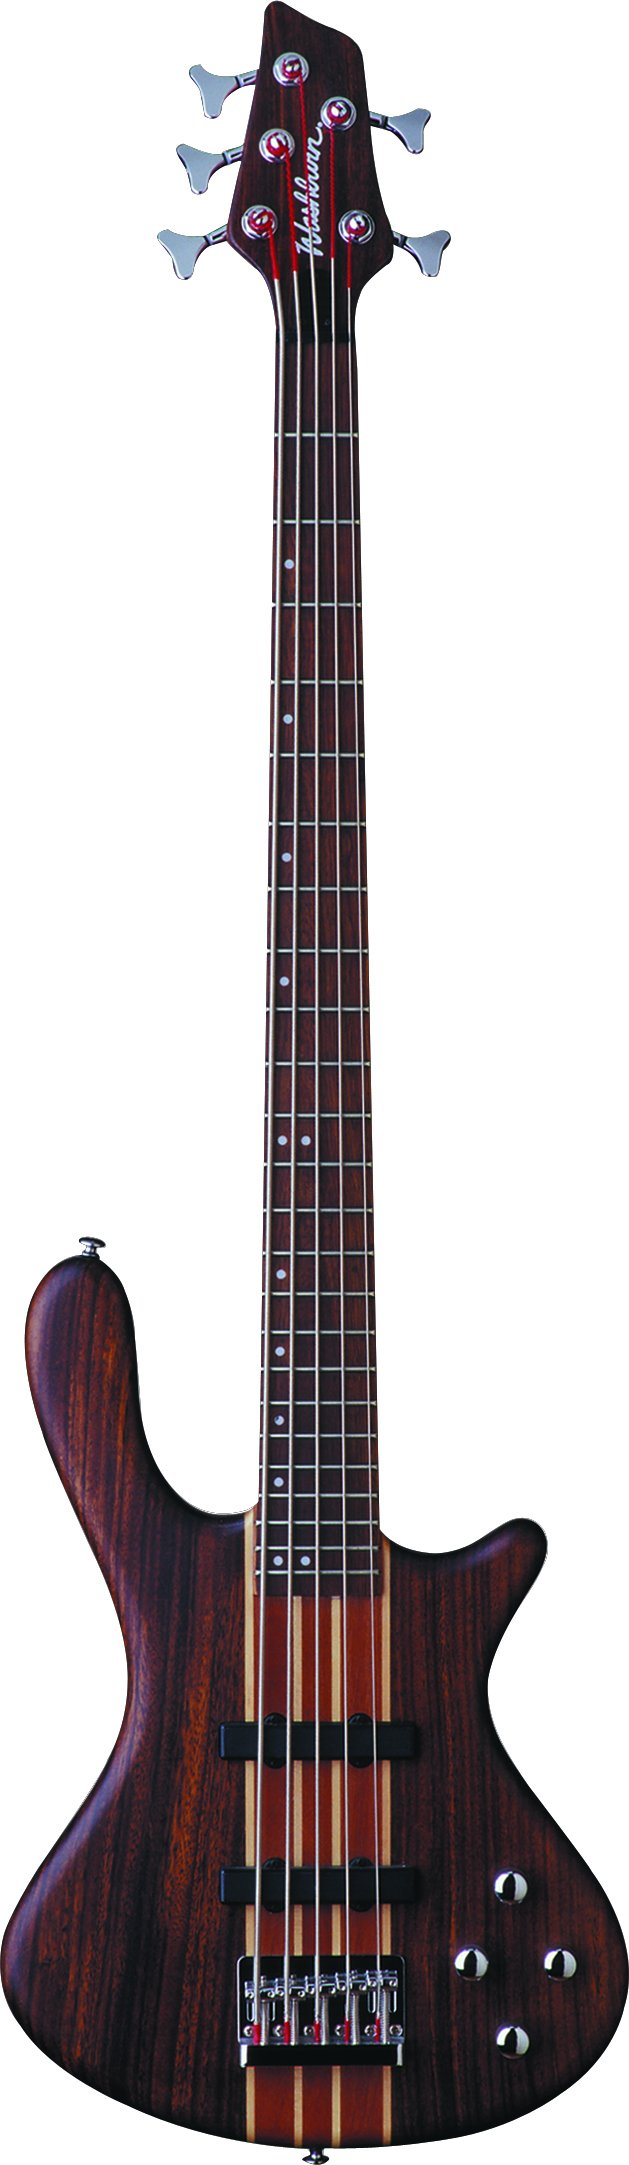 Washburn T24NMK Taurus 4-String Electric Bass Guitar with Gig Bag, Natural Matte Finish by Washburn